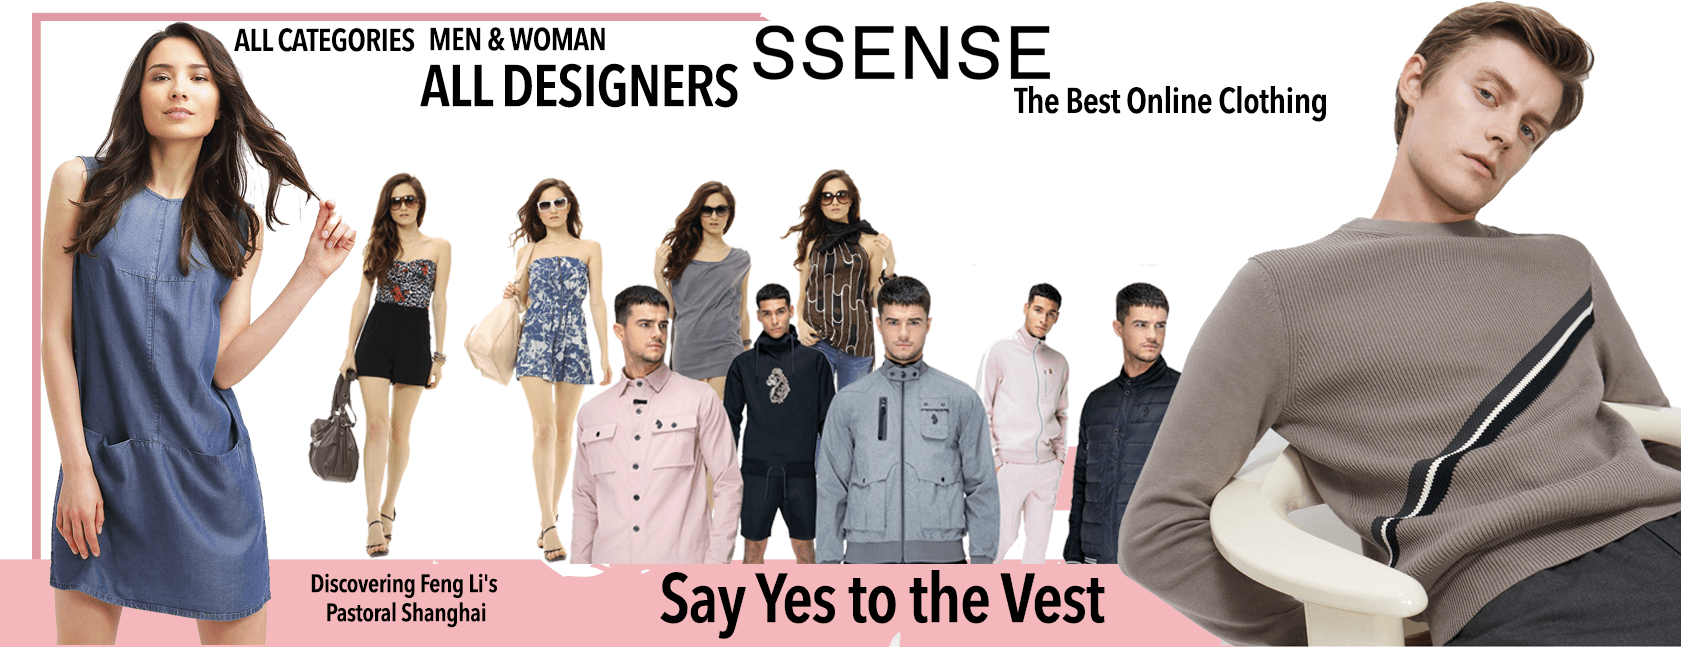 SSENSE: Shop from 500+ luxury labels, emerging designers and streetwear brands for both men and women. Gucci, Off-White, Acne Studios, and more.